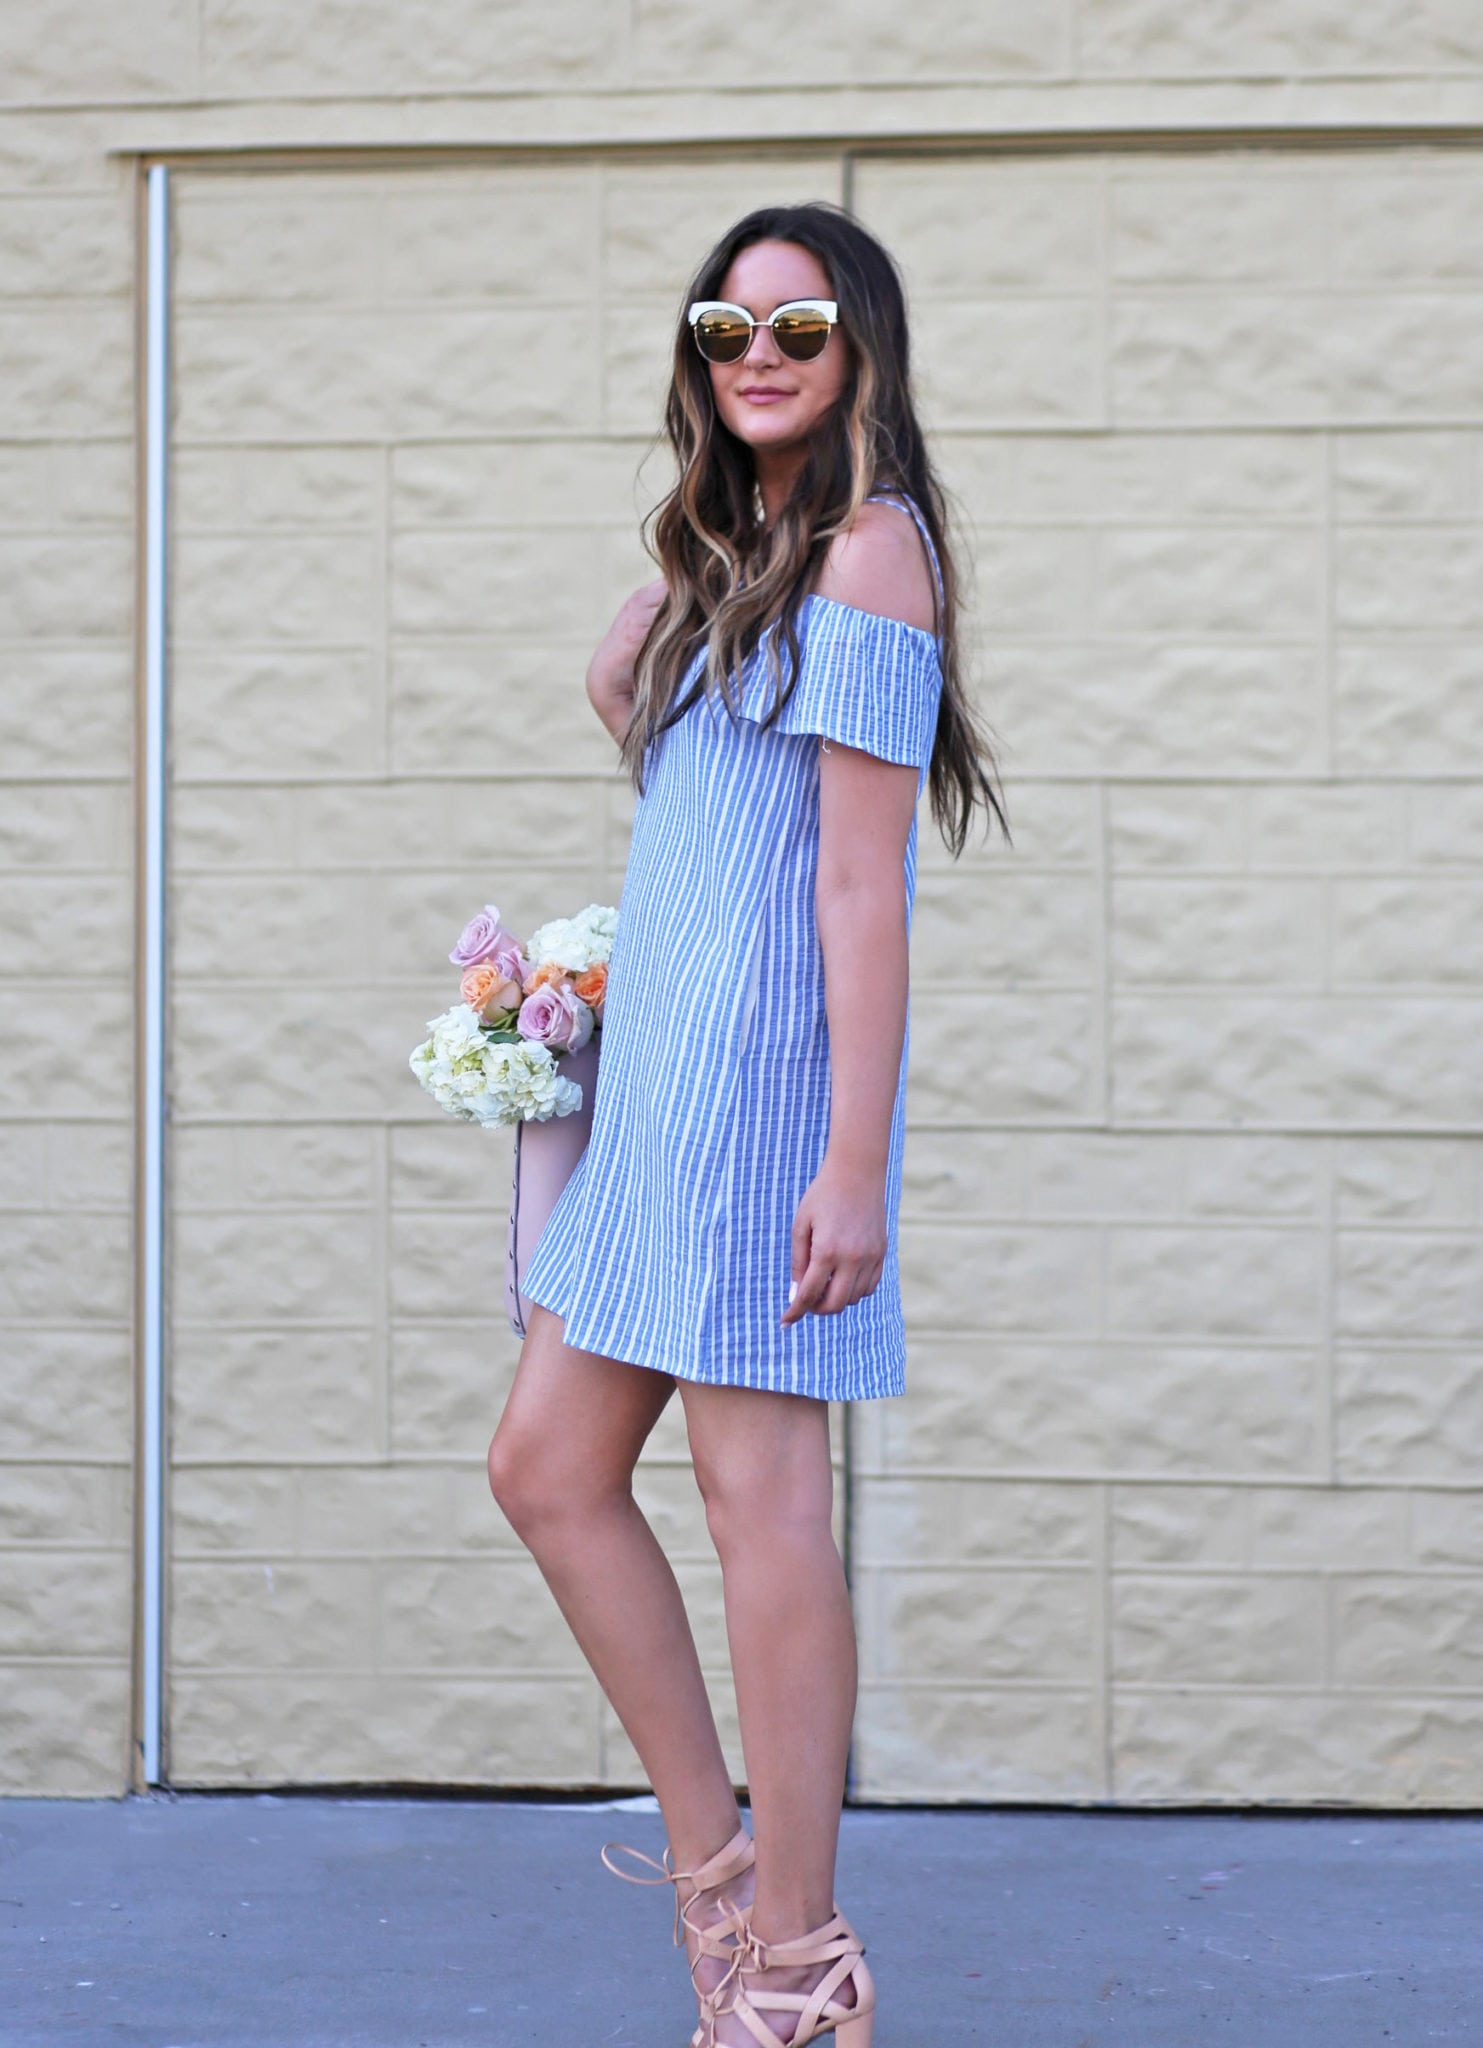 Romantic off the shoulder dress | blue white stripes | flowers | tan heels | sunglasses | beauty blogger Mash Elle